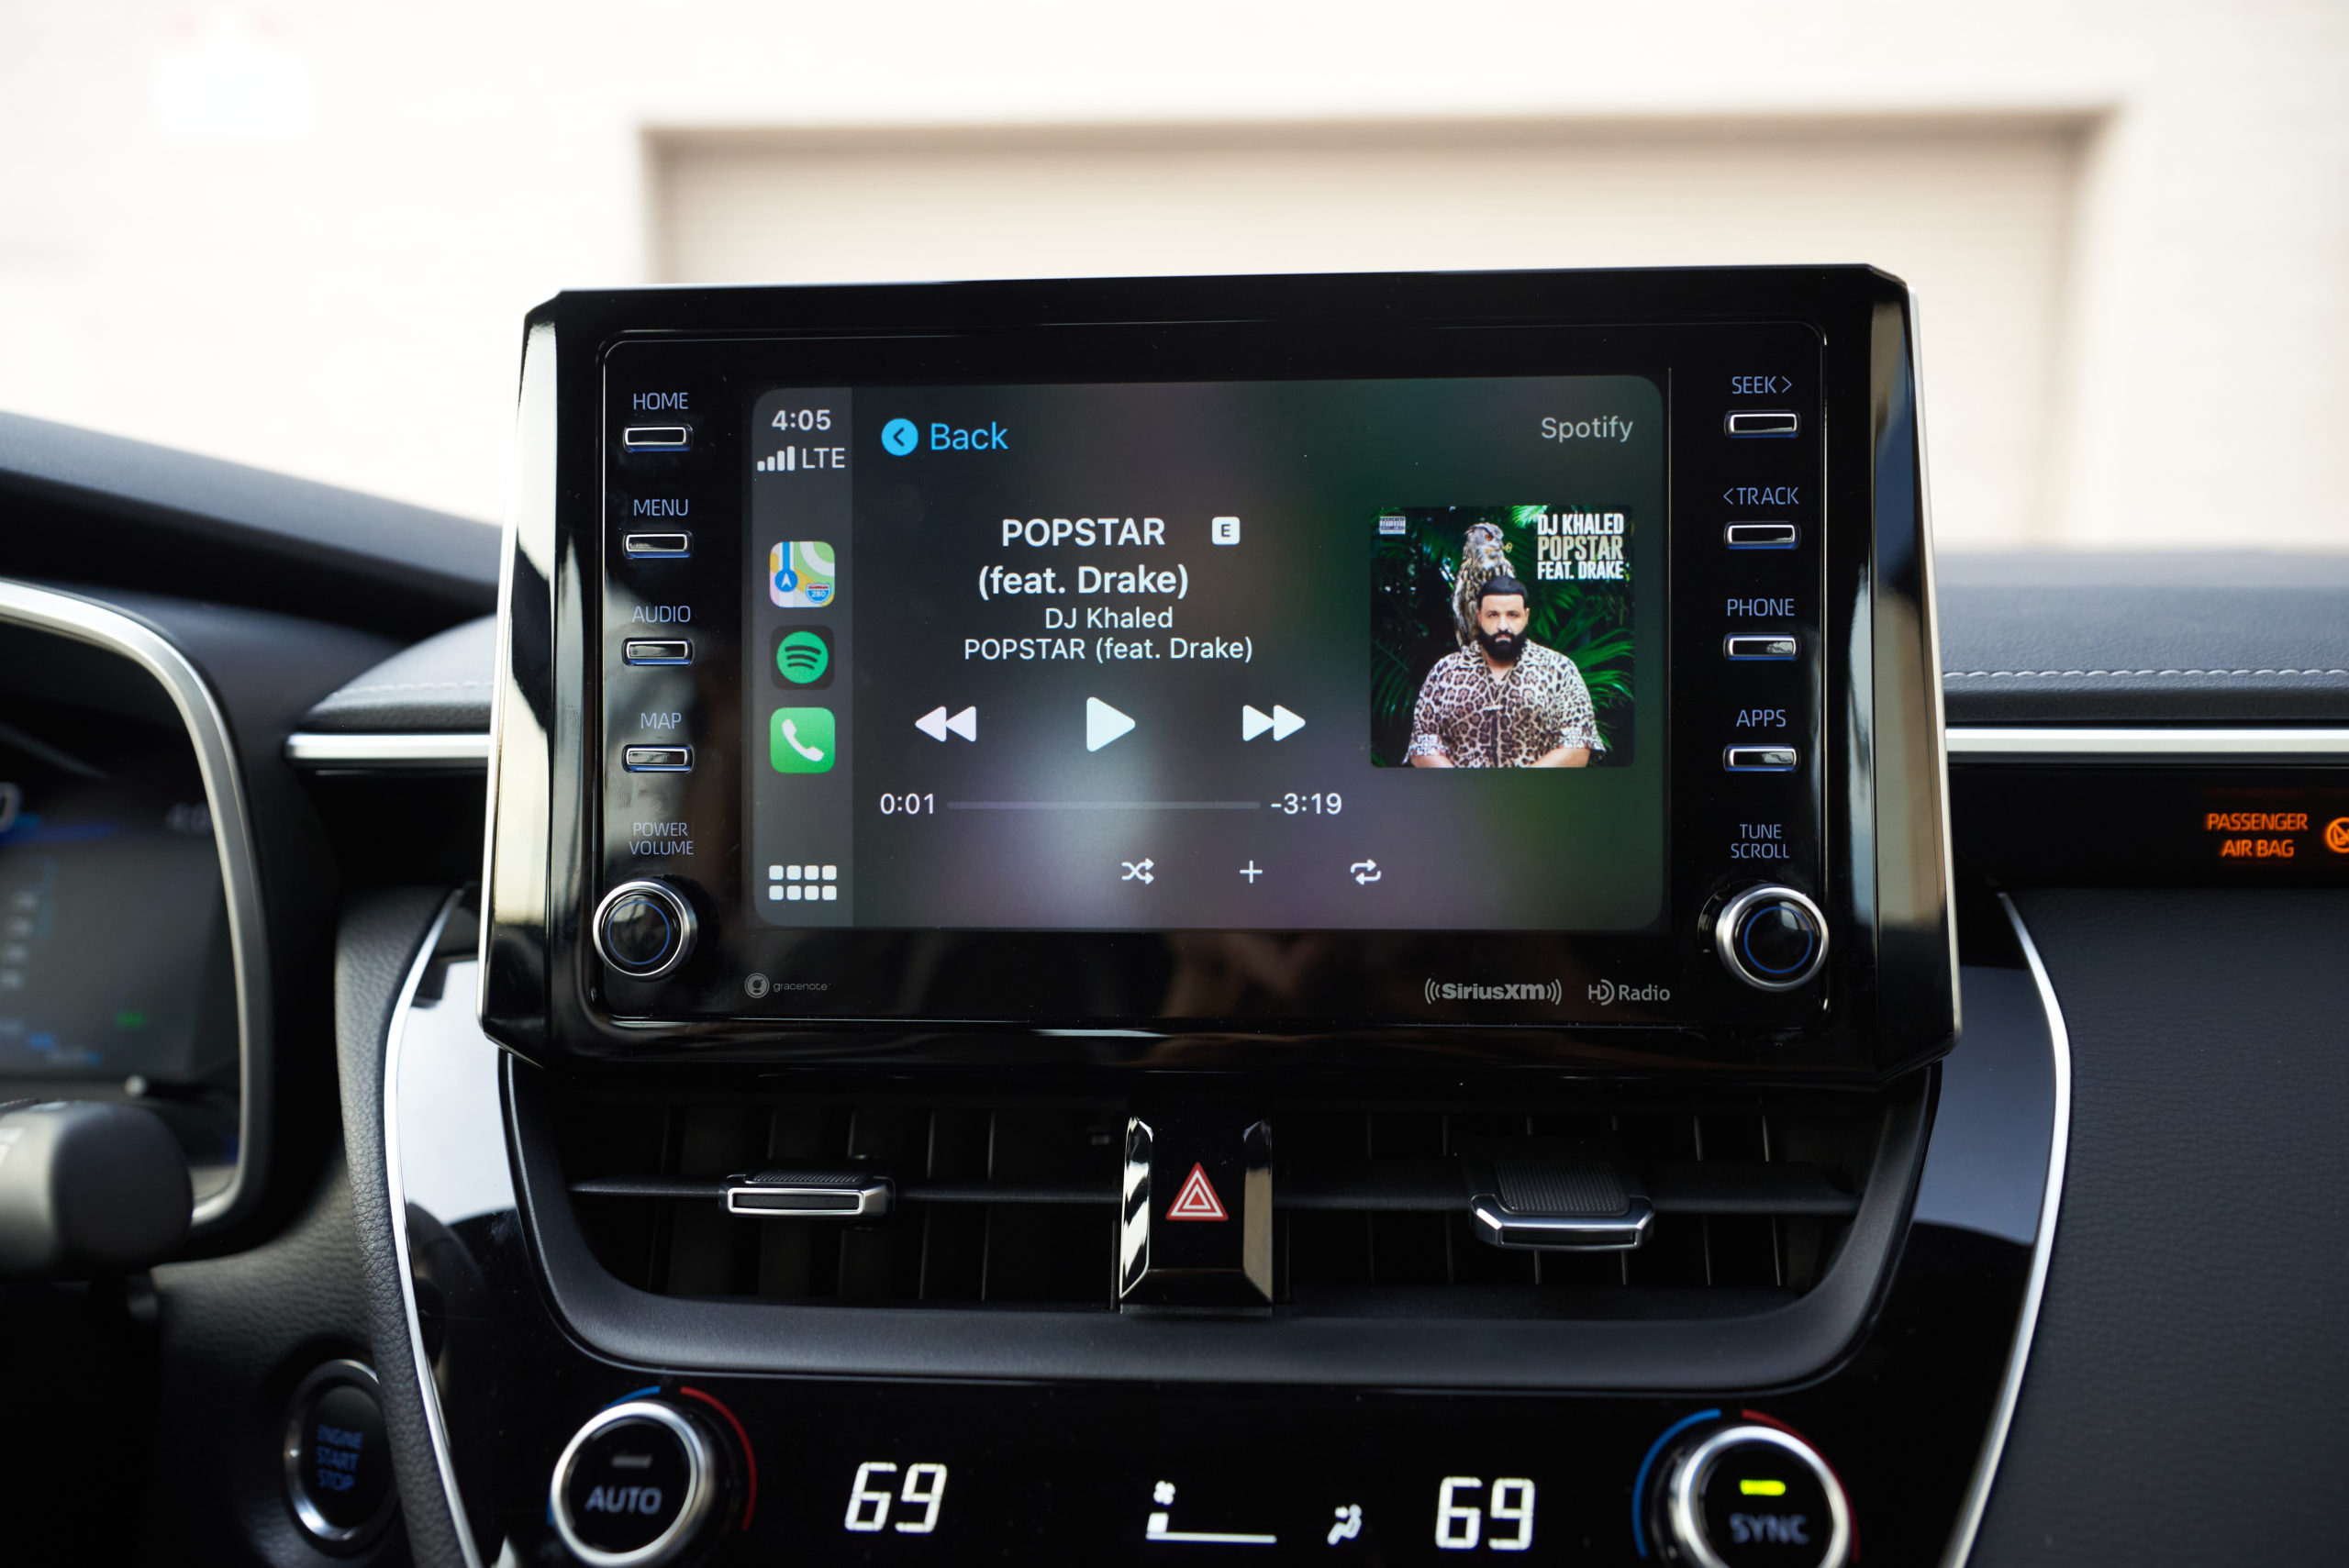 2021 Toyota Corolla XSE infotainment screen